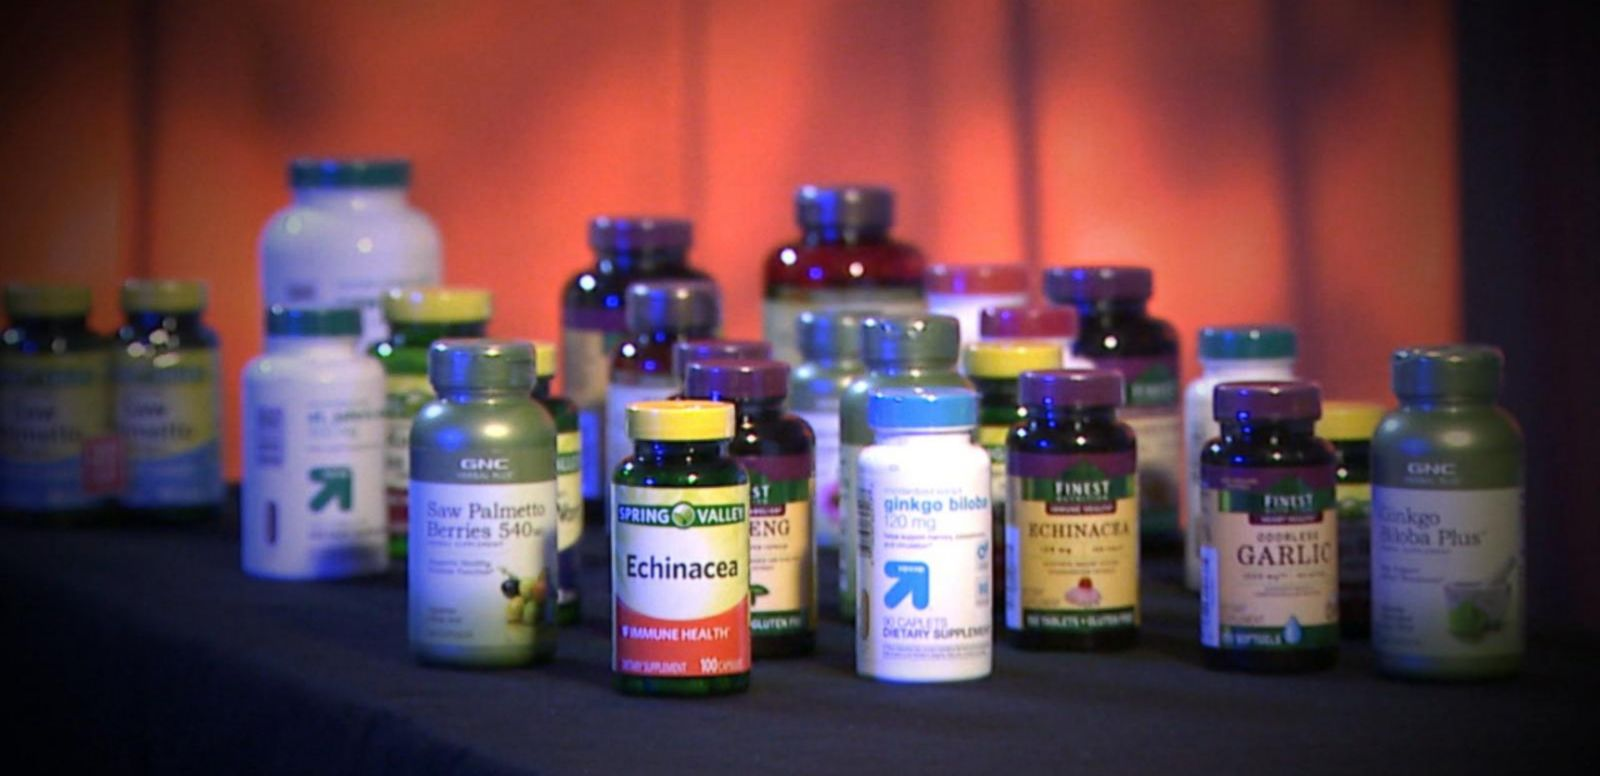 VIDEO: Herbal Supplements Crackdown: Some Brands May Be Misleading